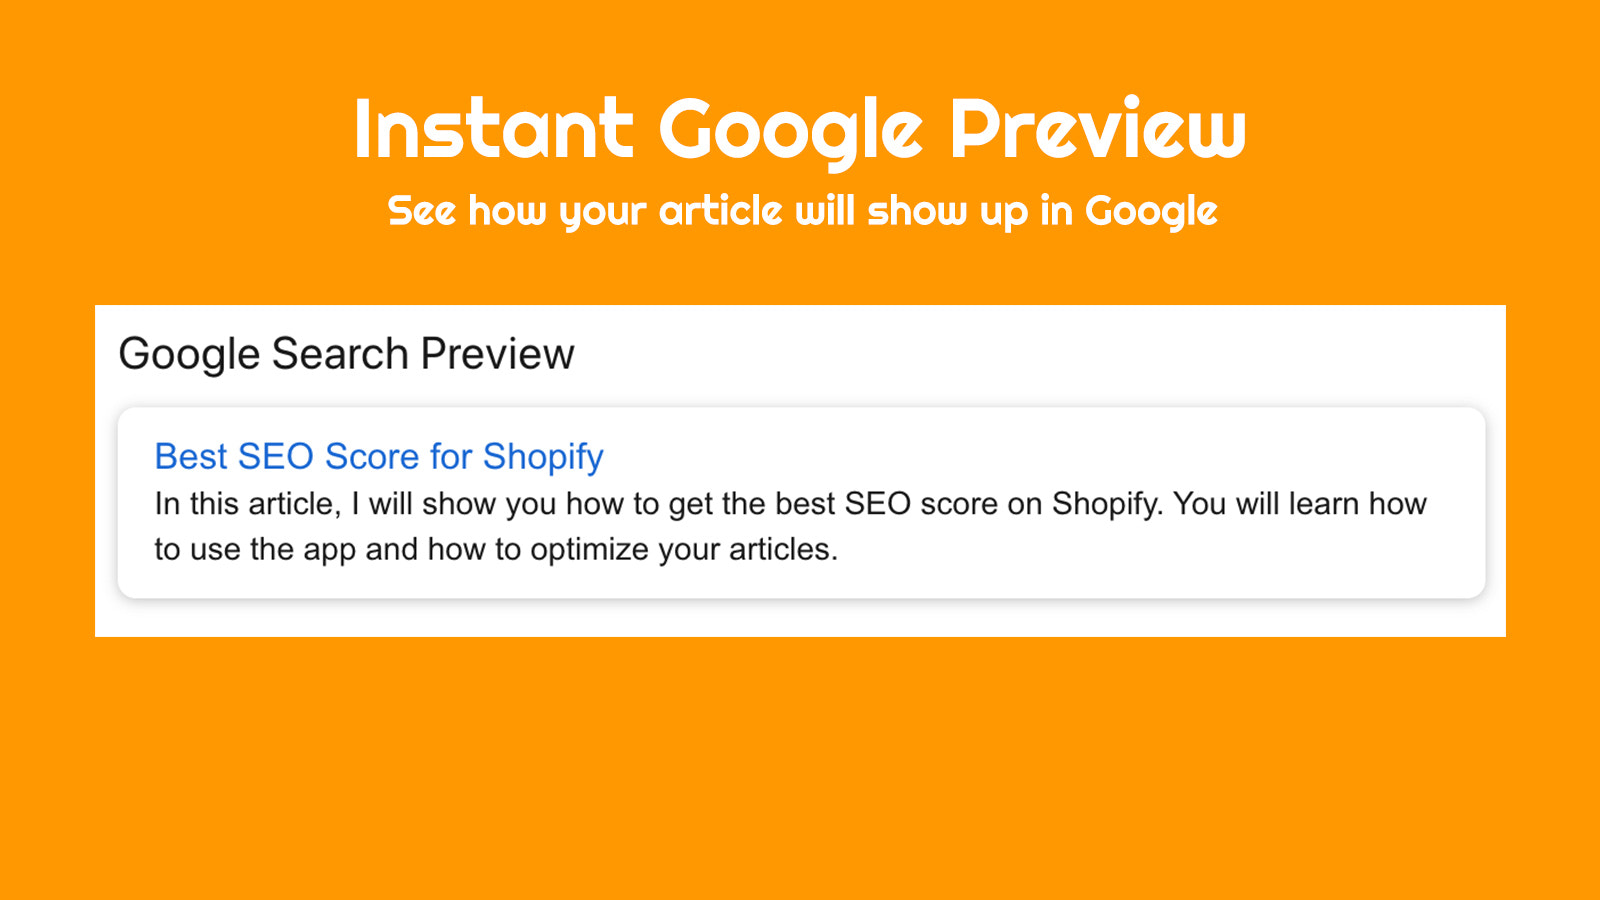 See what will your articles look like in the Google results